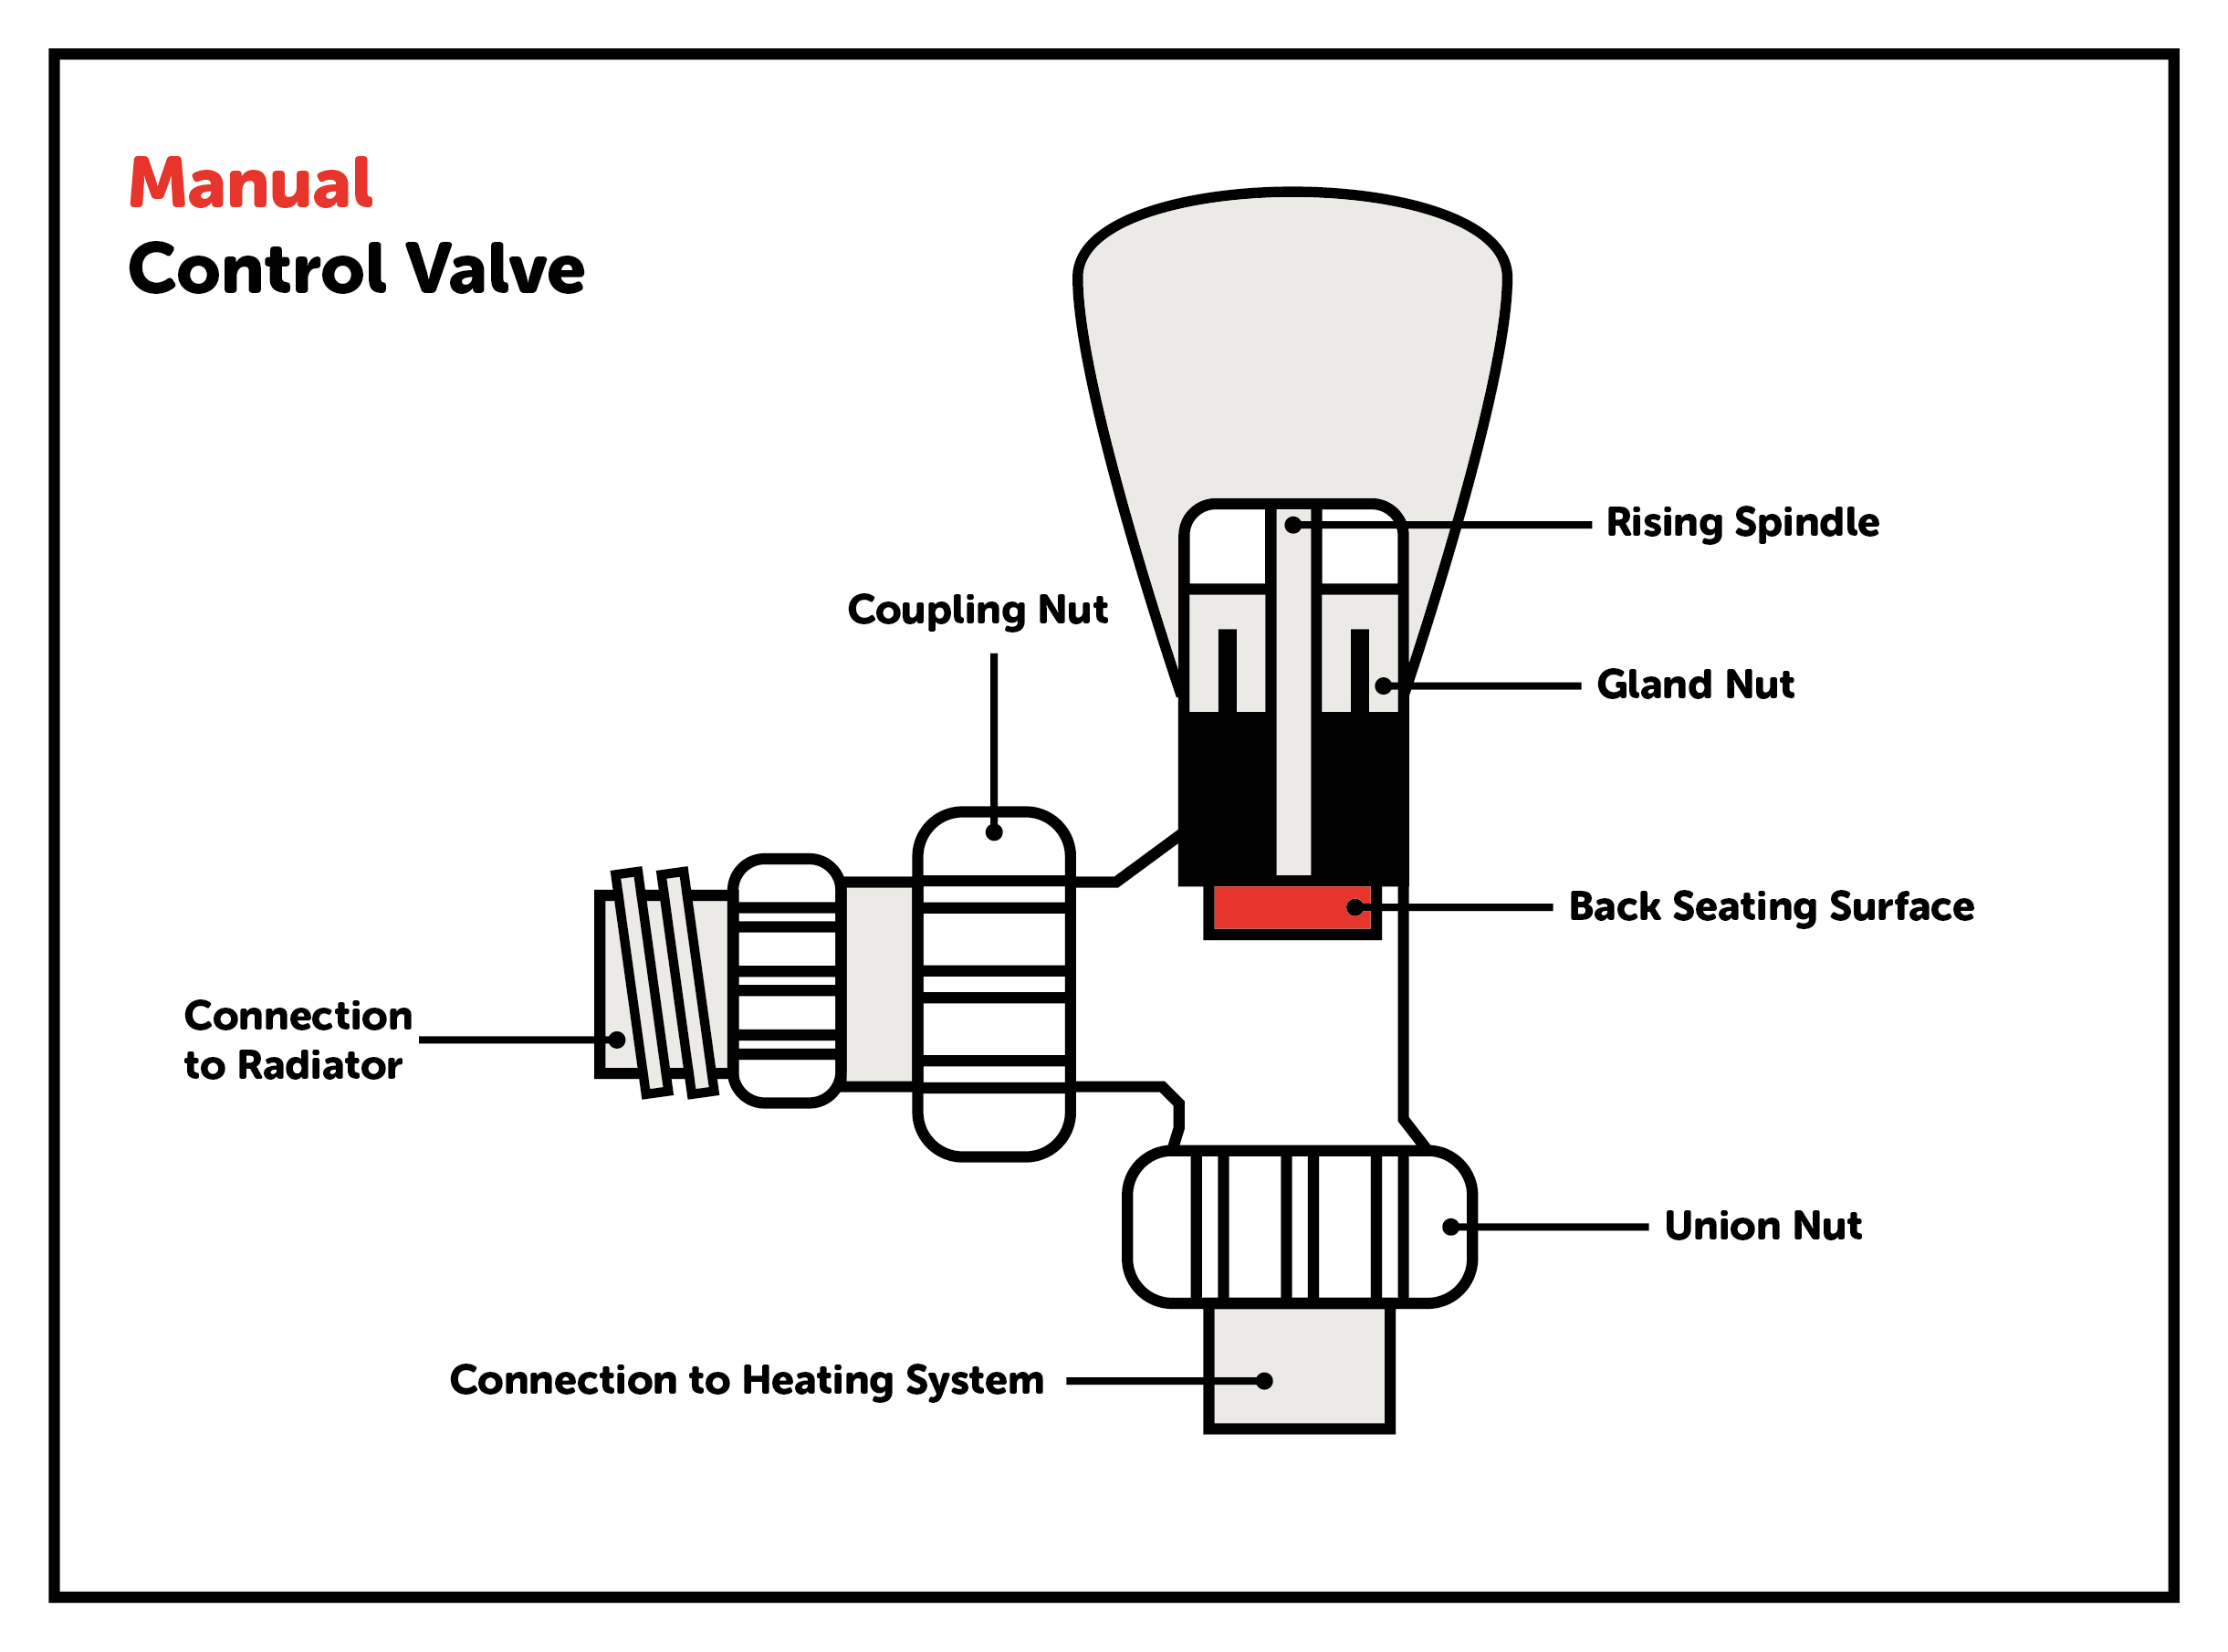 manual control valve with labelled parts - how to fix a leaking radiator